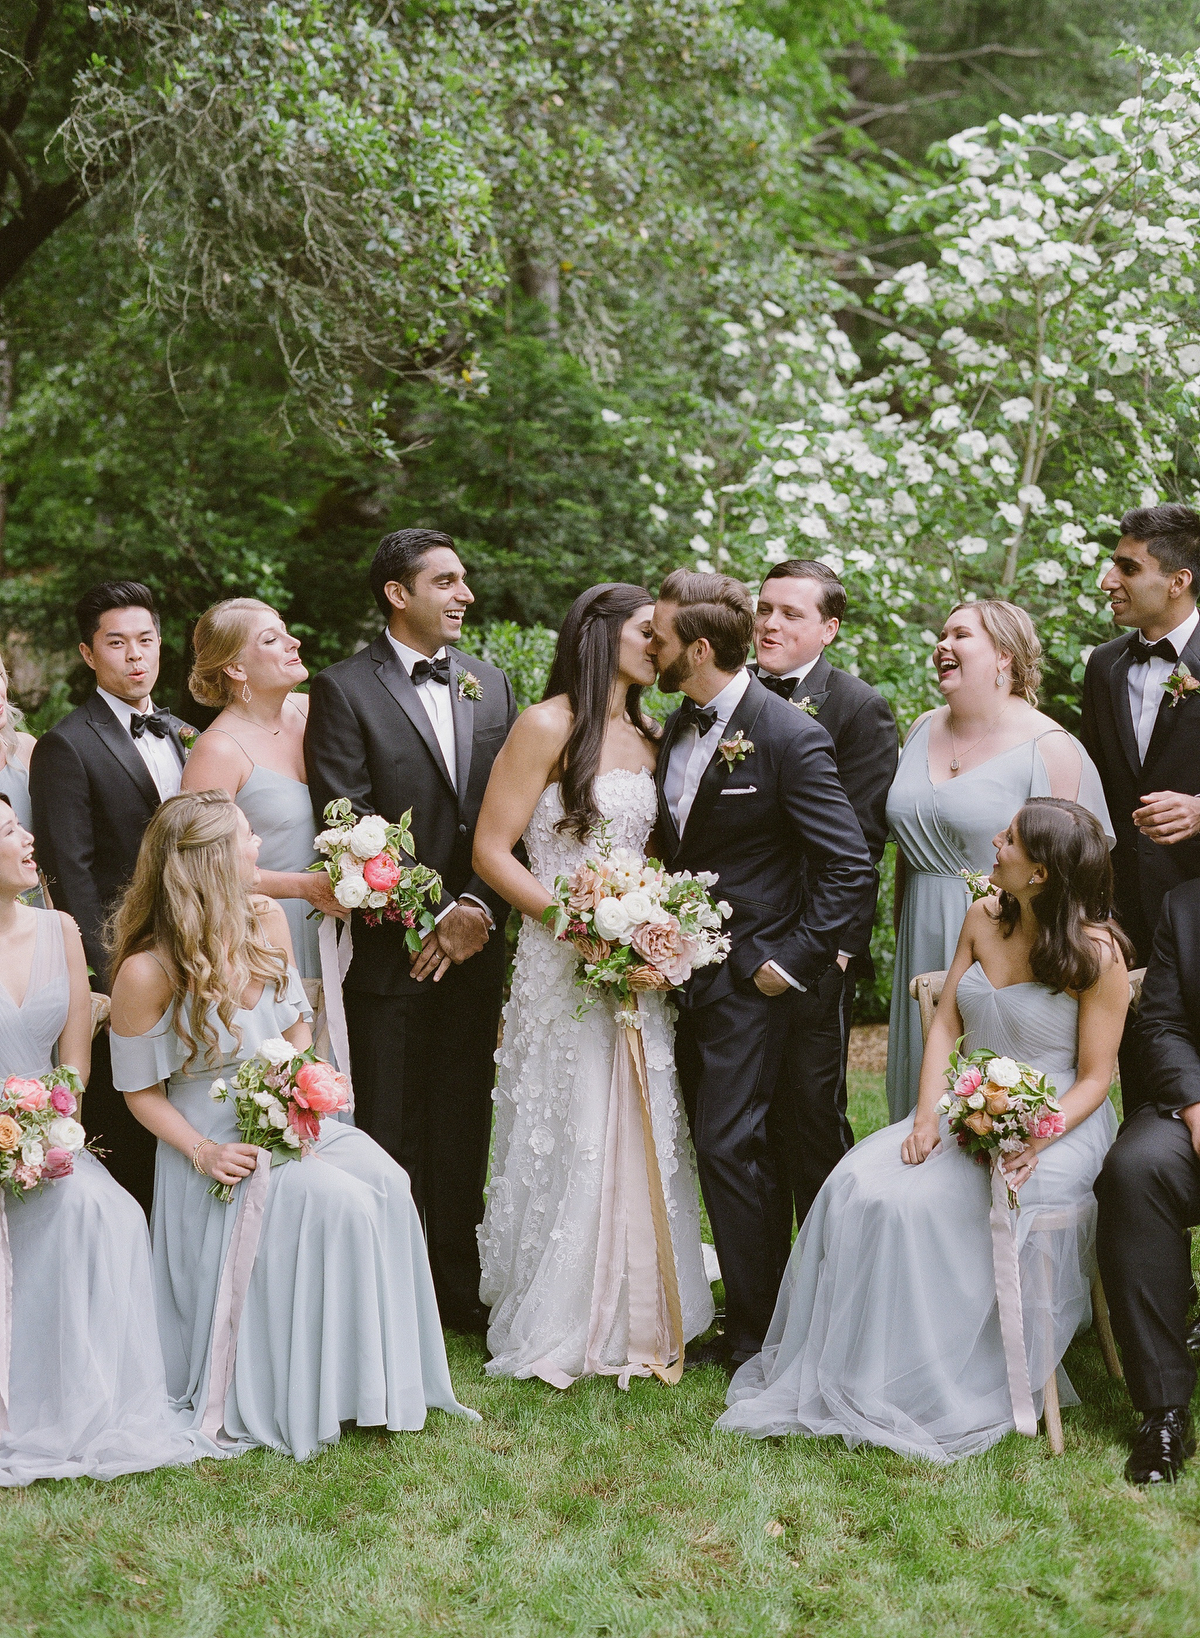 nadine dan wedding couple kiss surrounded by wedding party